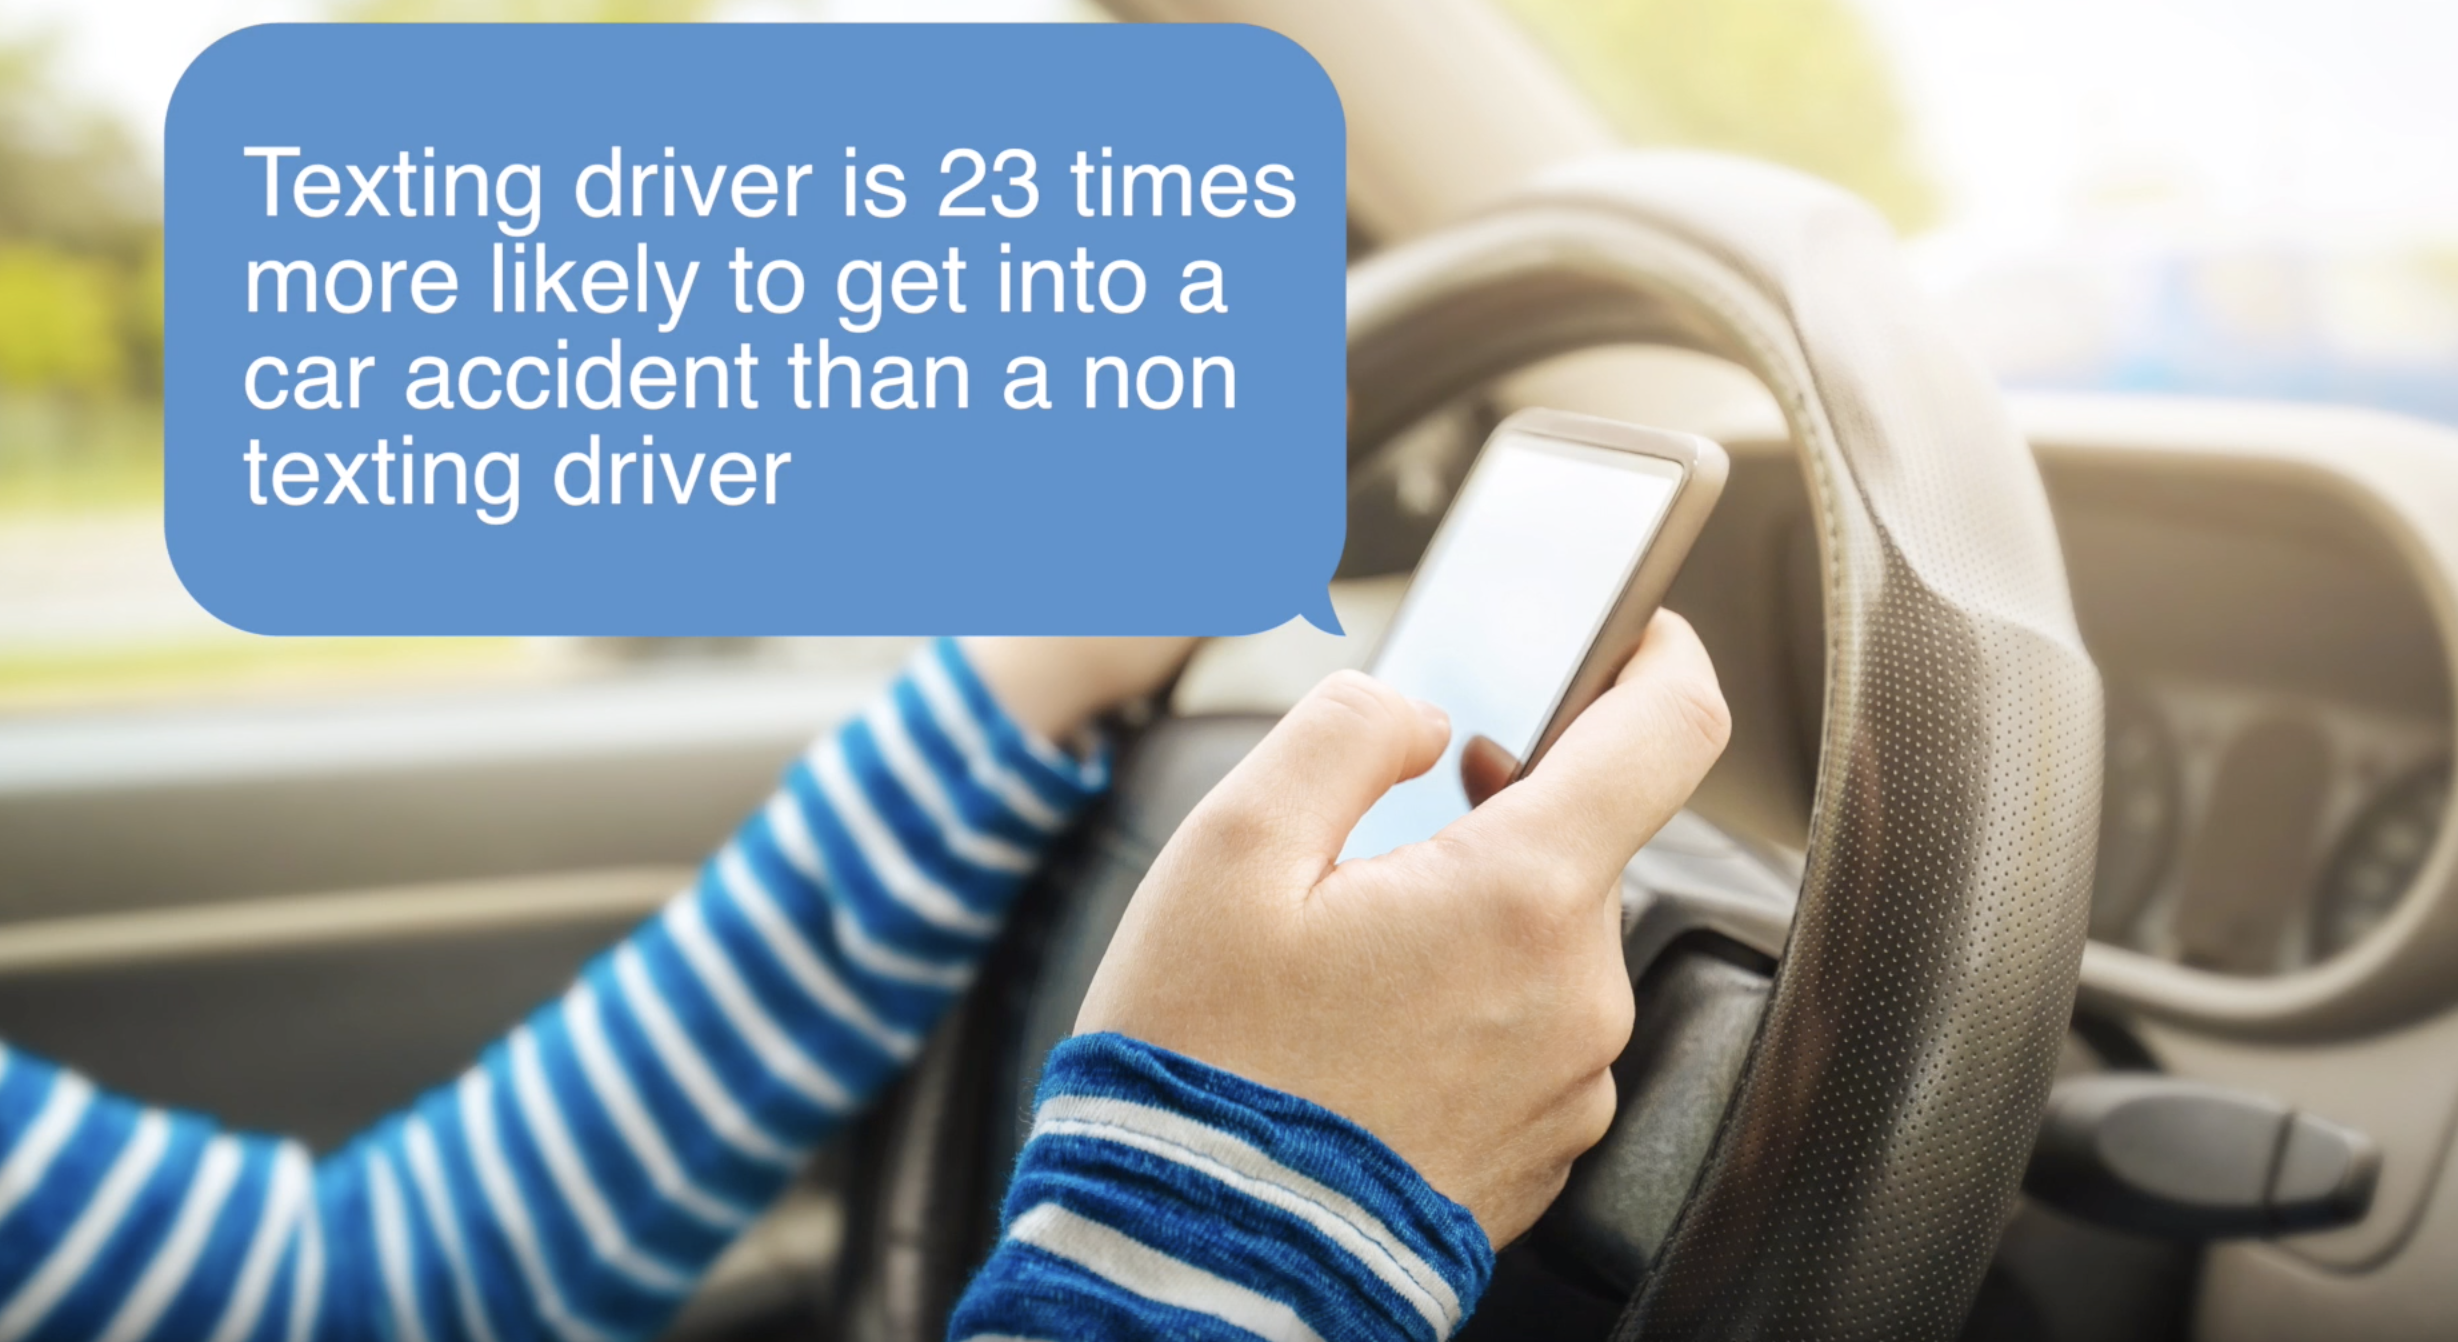 Solve It: Distracted Driving - Your challenge: To design a solution to reduce the number of accidents caused by distracted driving and texting.